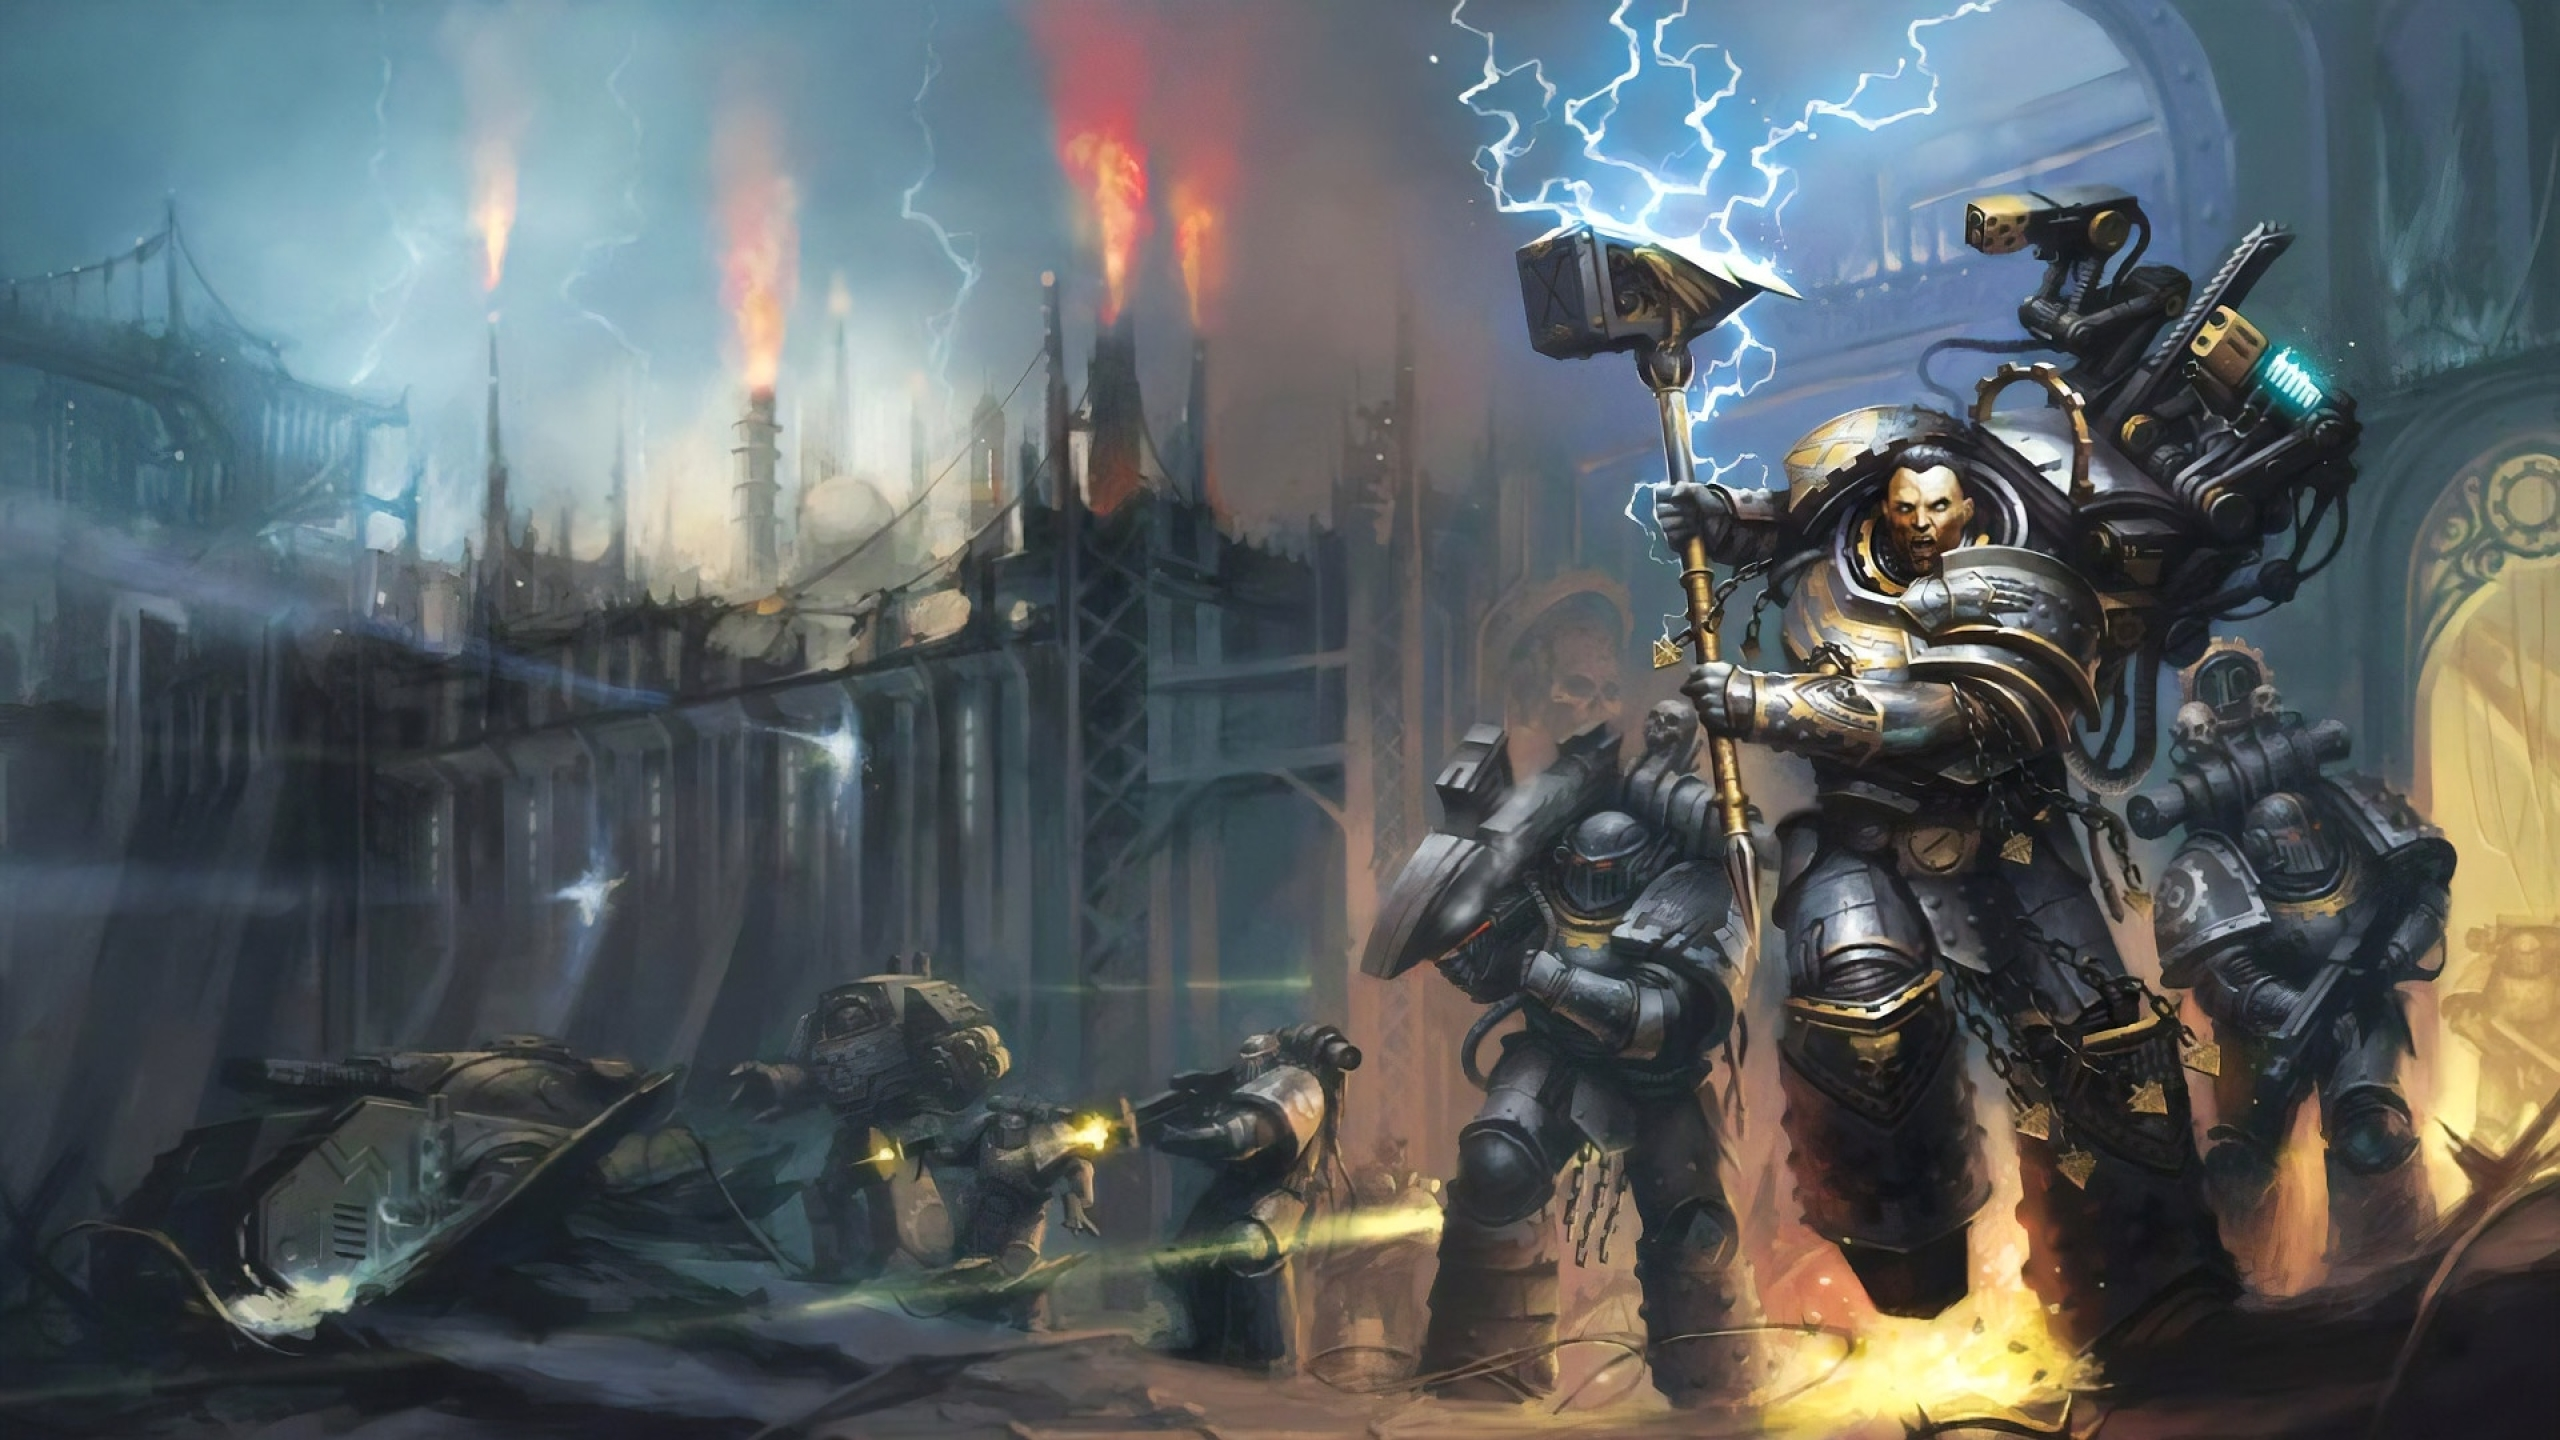 2560x1440 Warhammer 40k 1440p Resolution Wallpaper Hd Games 4k Wallpapers Images Photos And Background